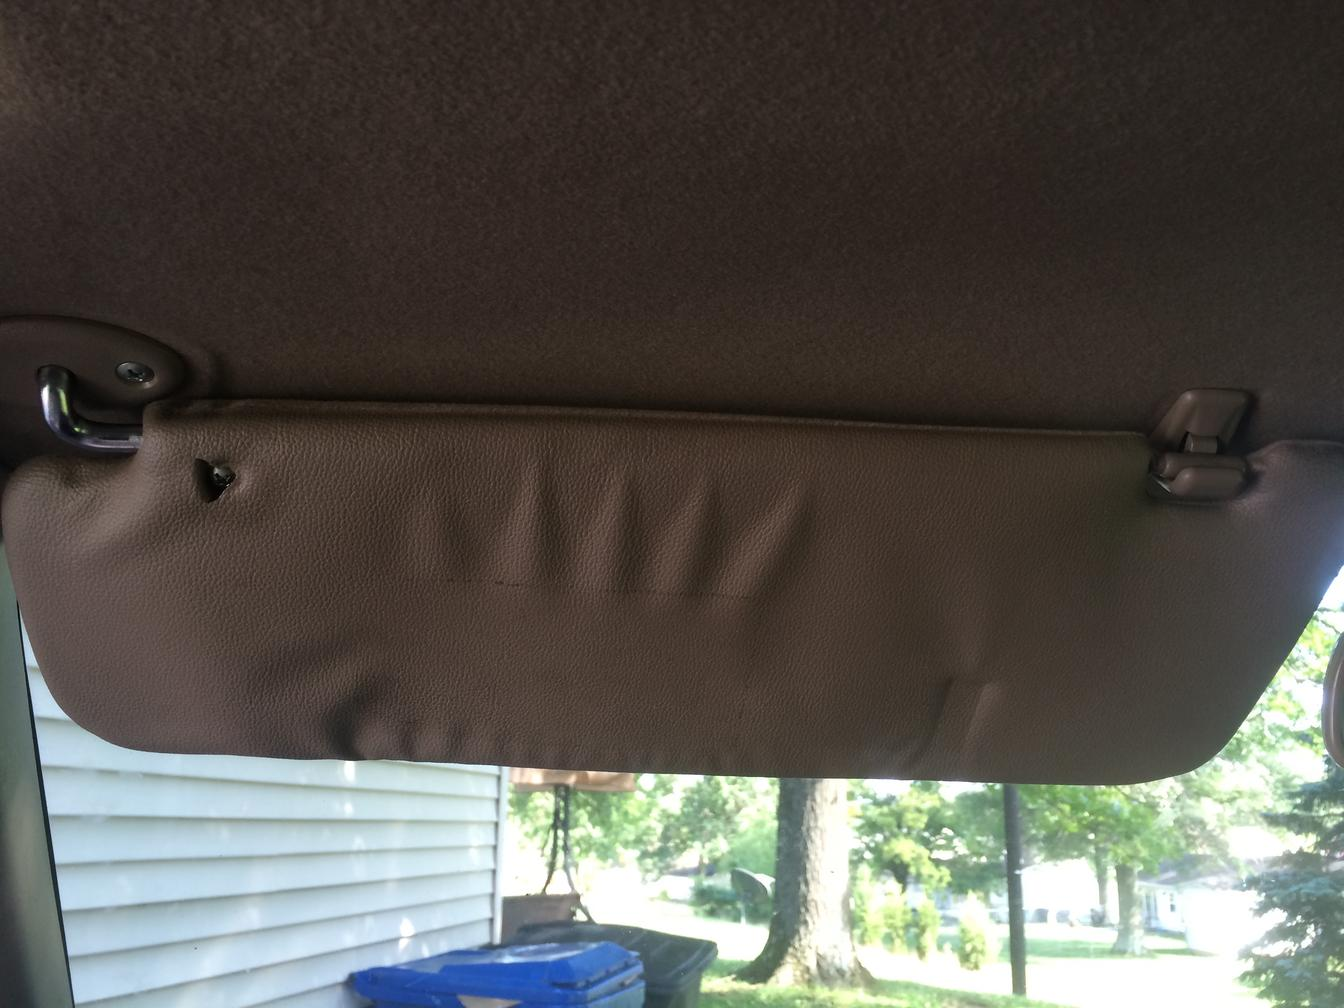 hight resolution of  roof mount led light bar install with pics img 6420 1 jpg